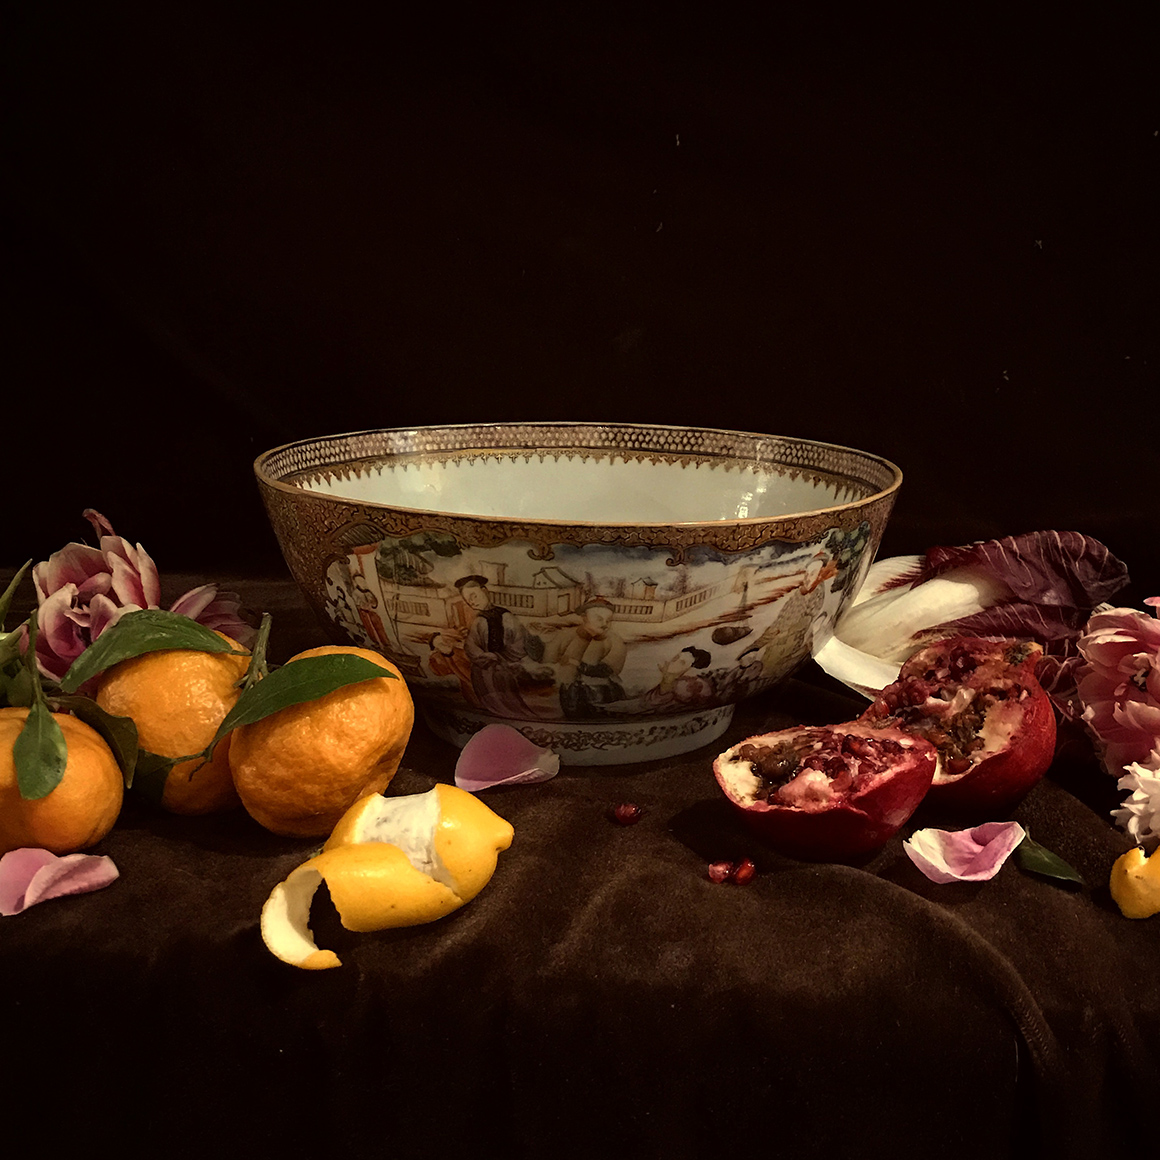 Still life with porcelain bowl